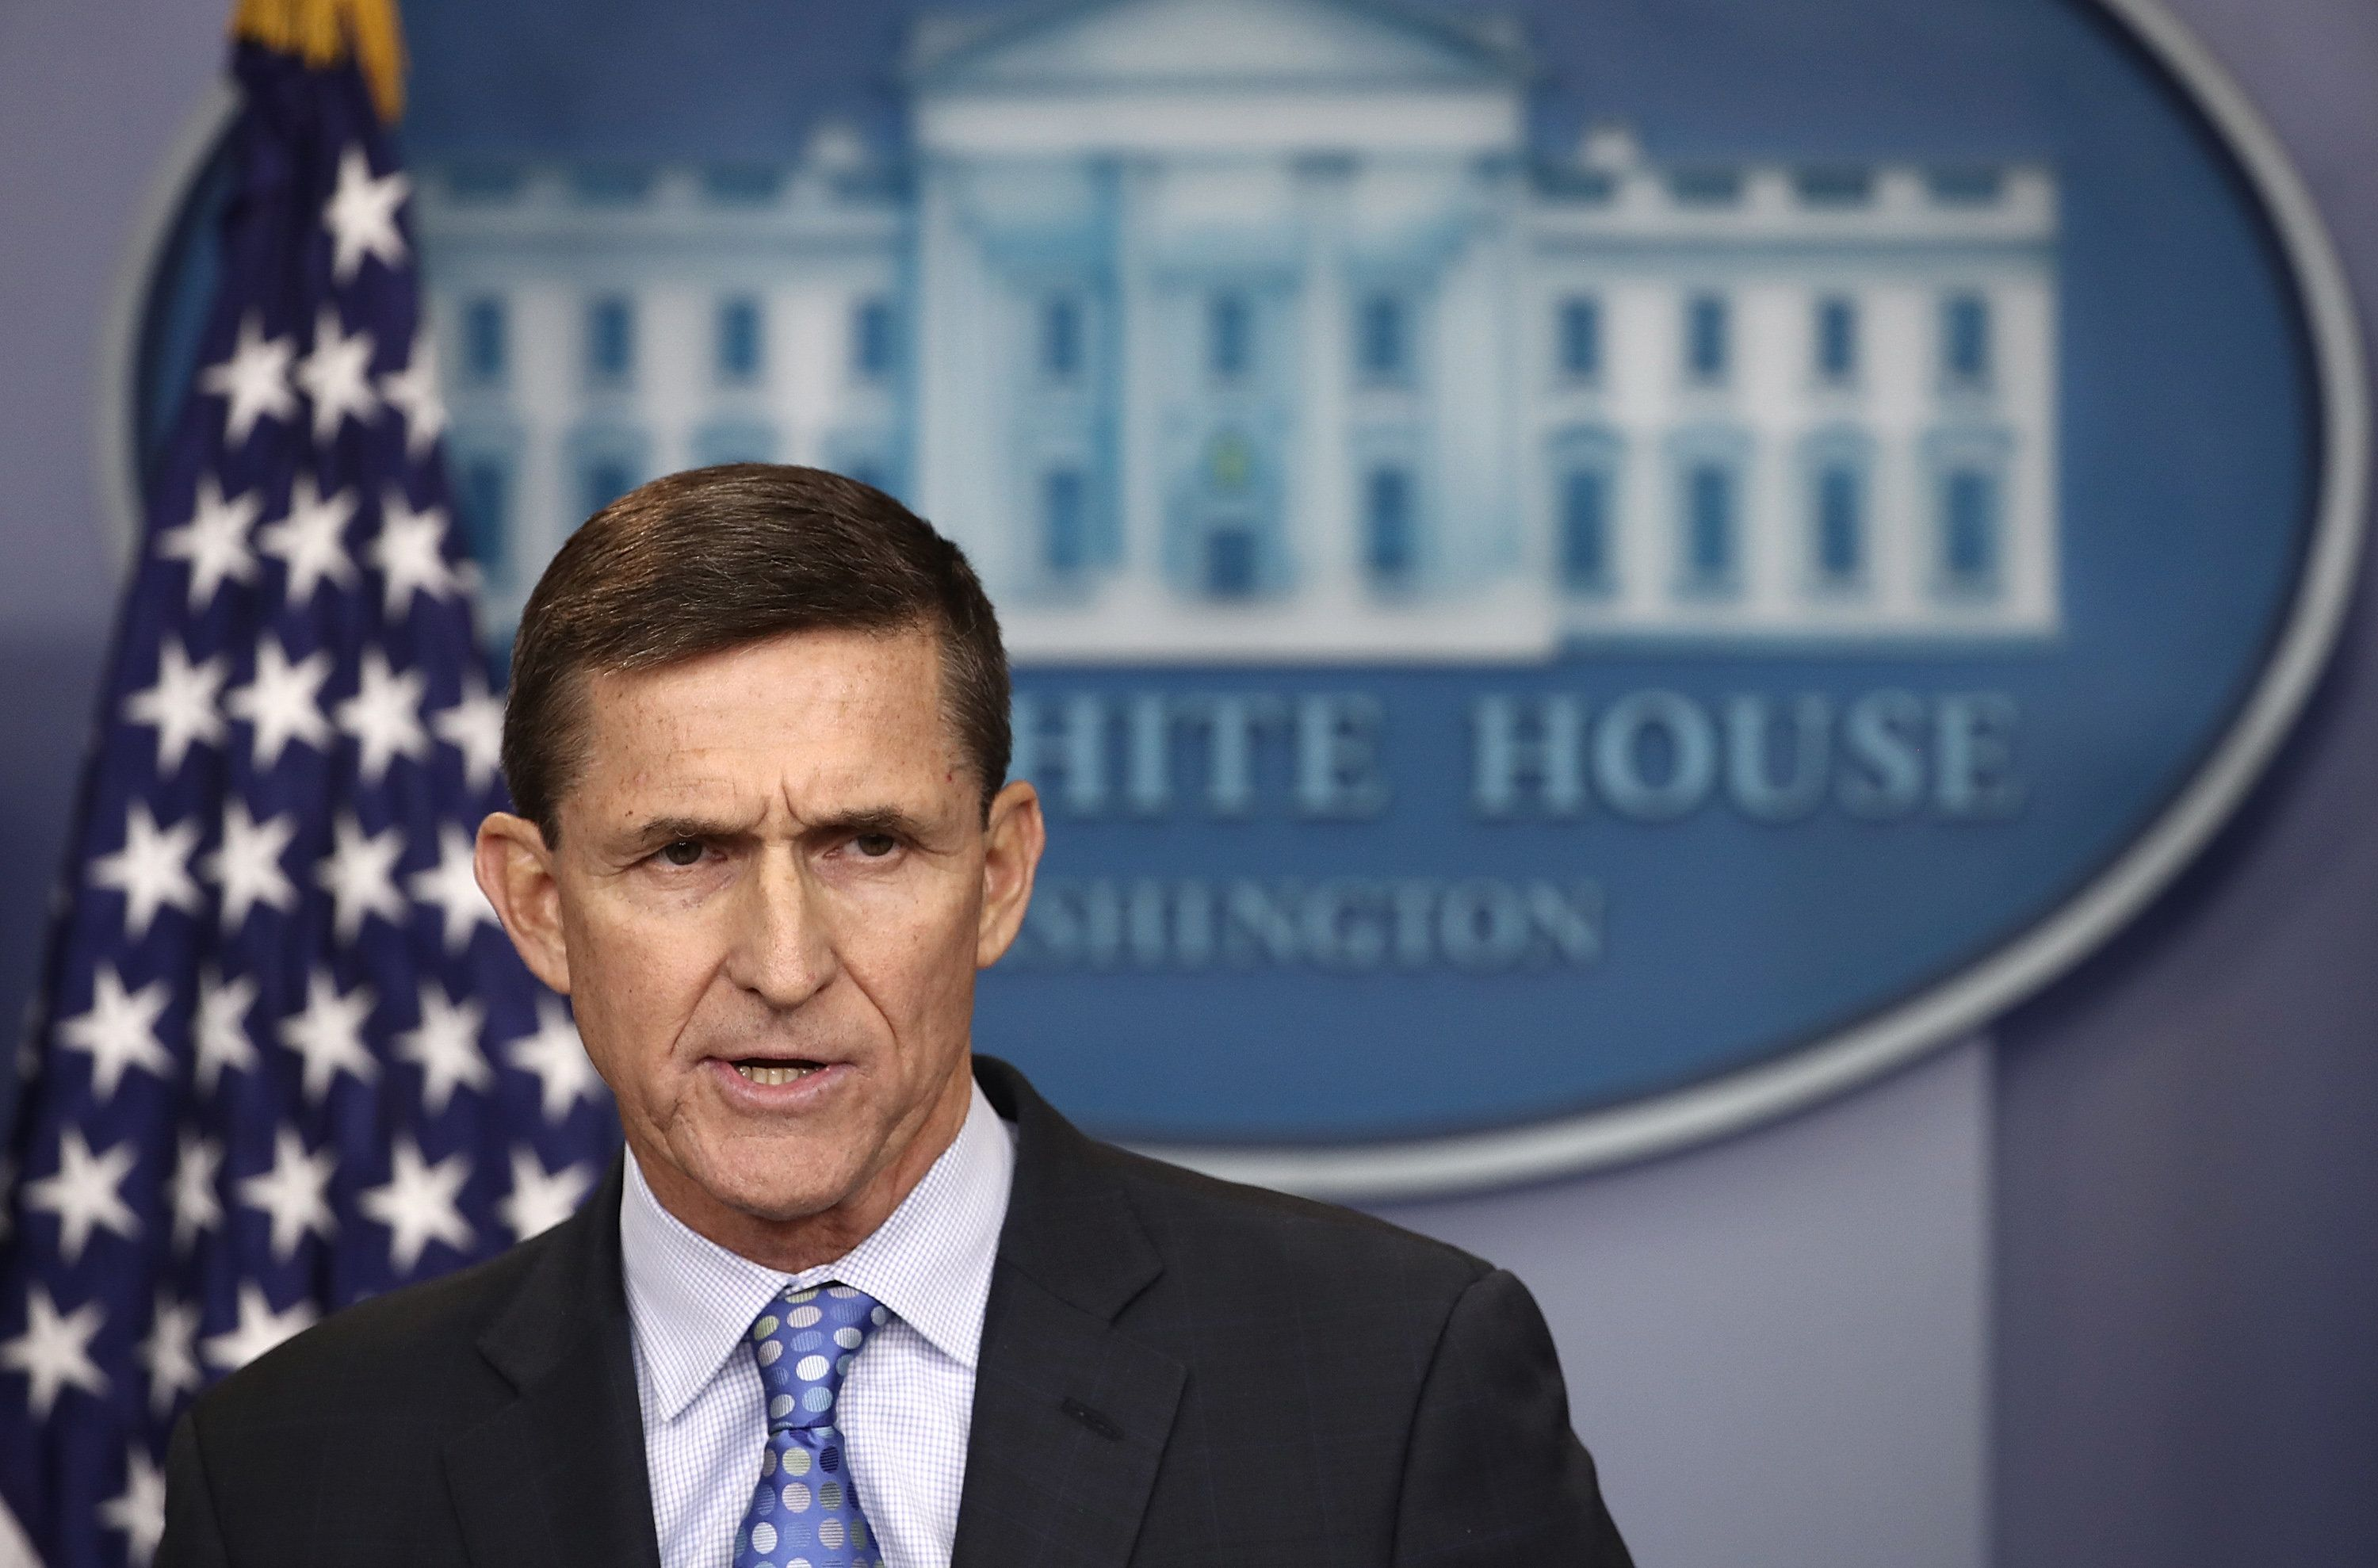 WASHINGTON, DC - FEBRUARY 01:  National Security Adviser Michael Flynn answers questions in the briefing room of the White House February 1, 2017 in Washington, DC. Flynn said the White House is 'officially putting Iran on notice' for a recent missile test and support for Houthi rebels in Yemen.  (Photo by Win McNamee/Getty Images)